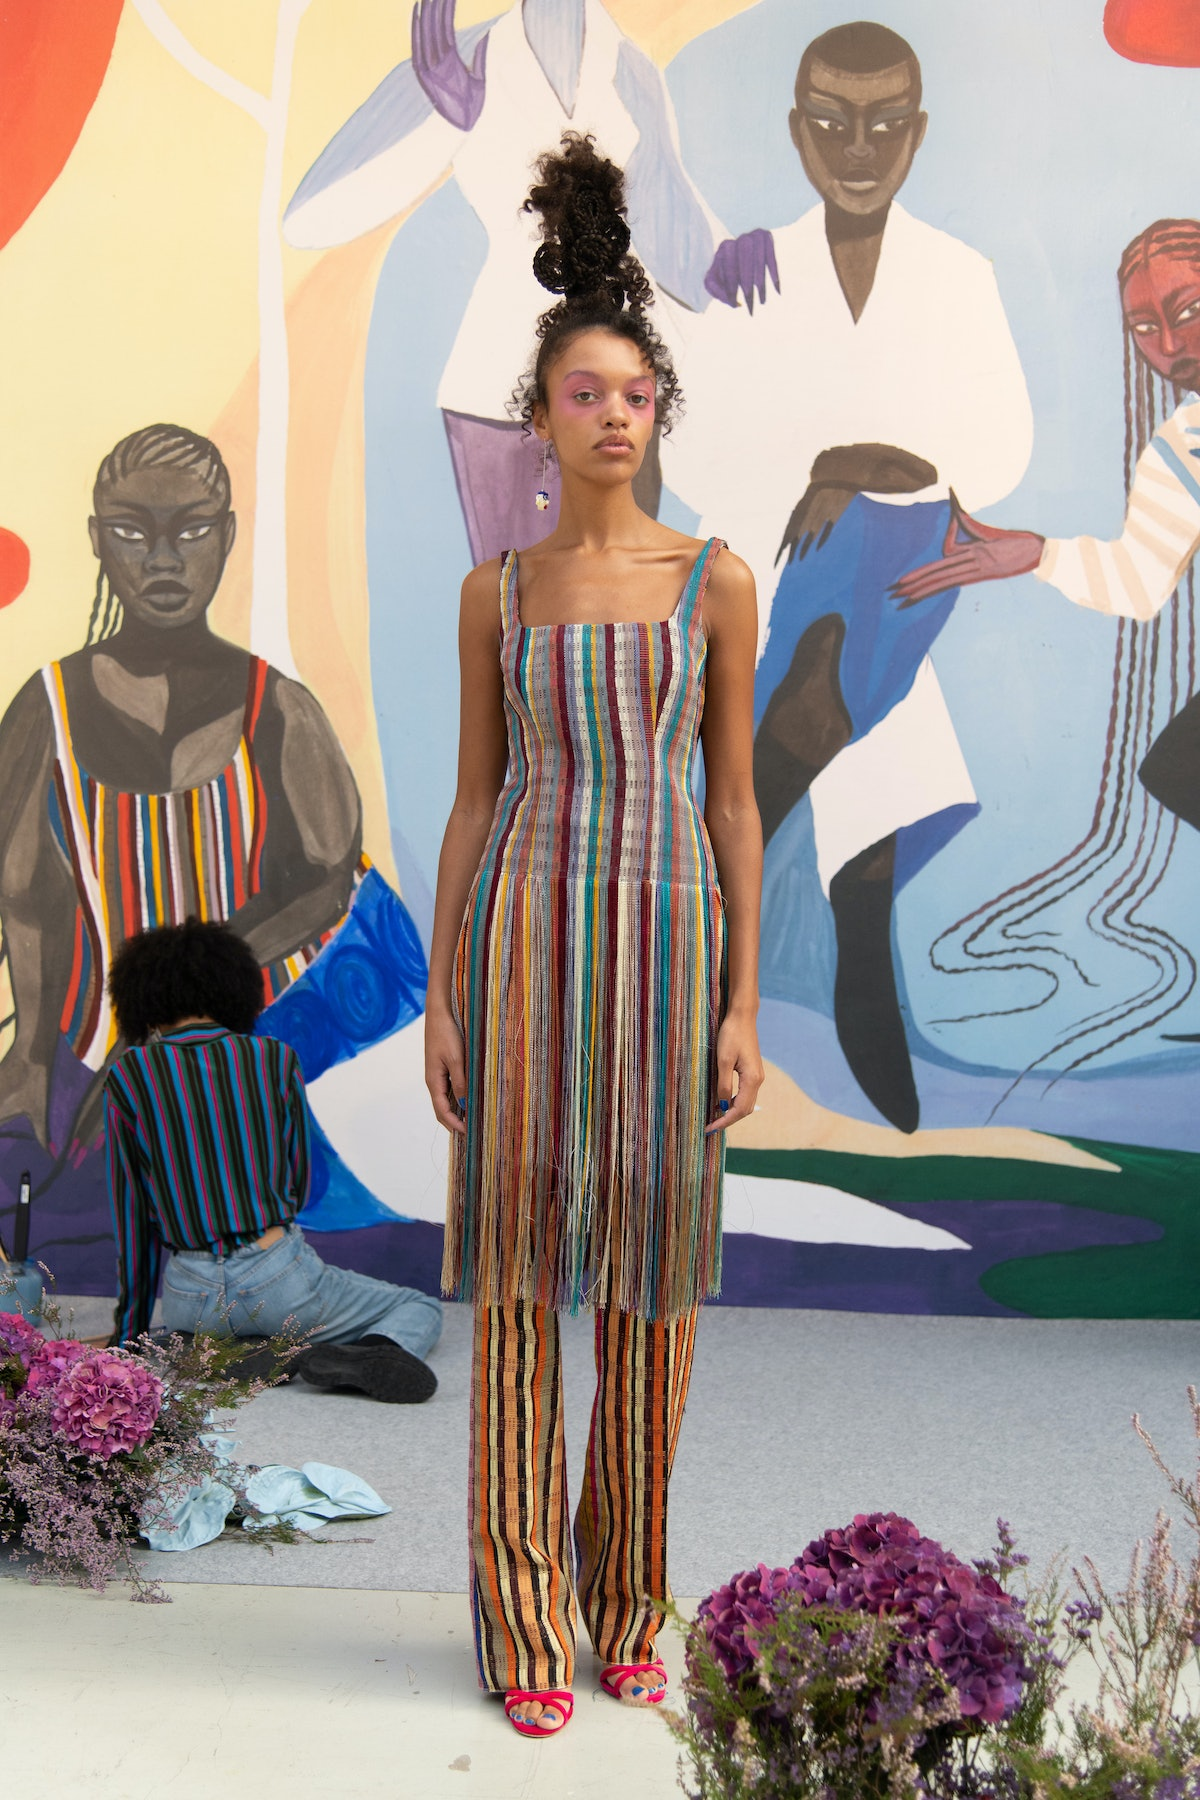 model wearing striped dress and pants